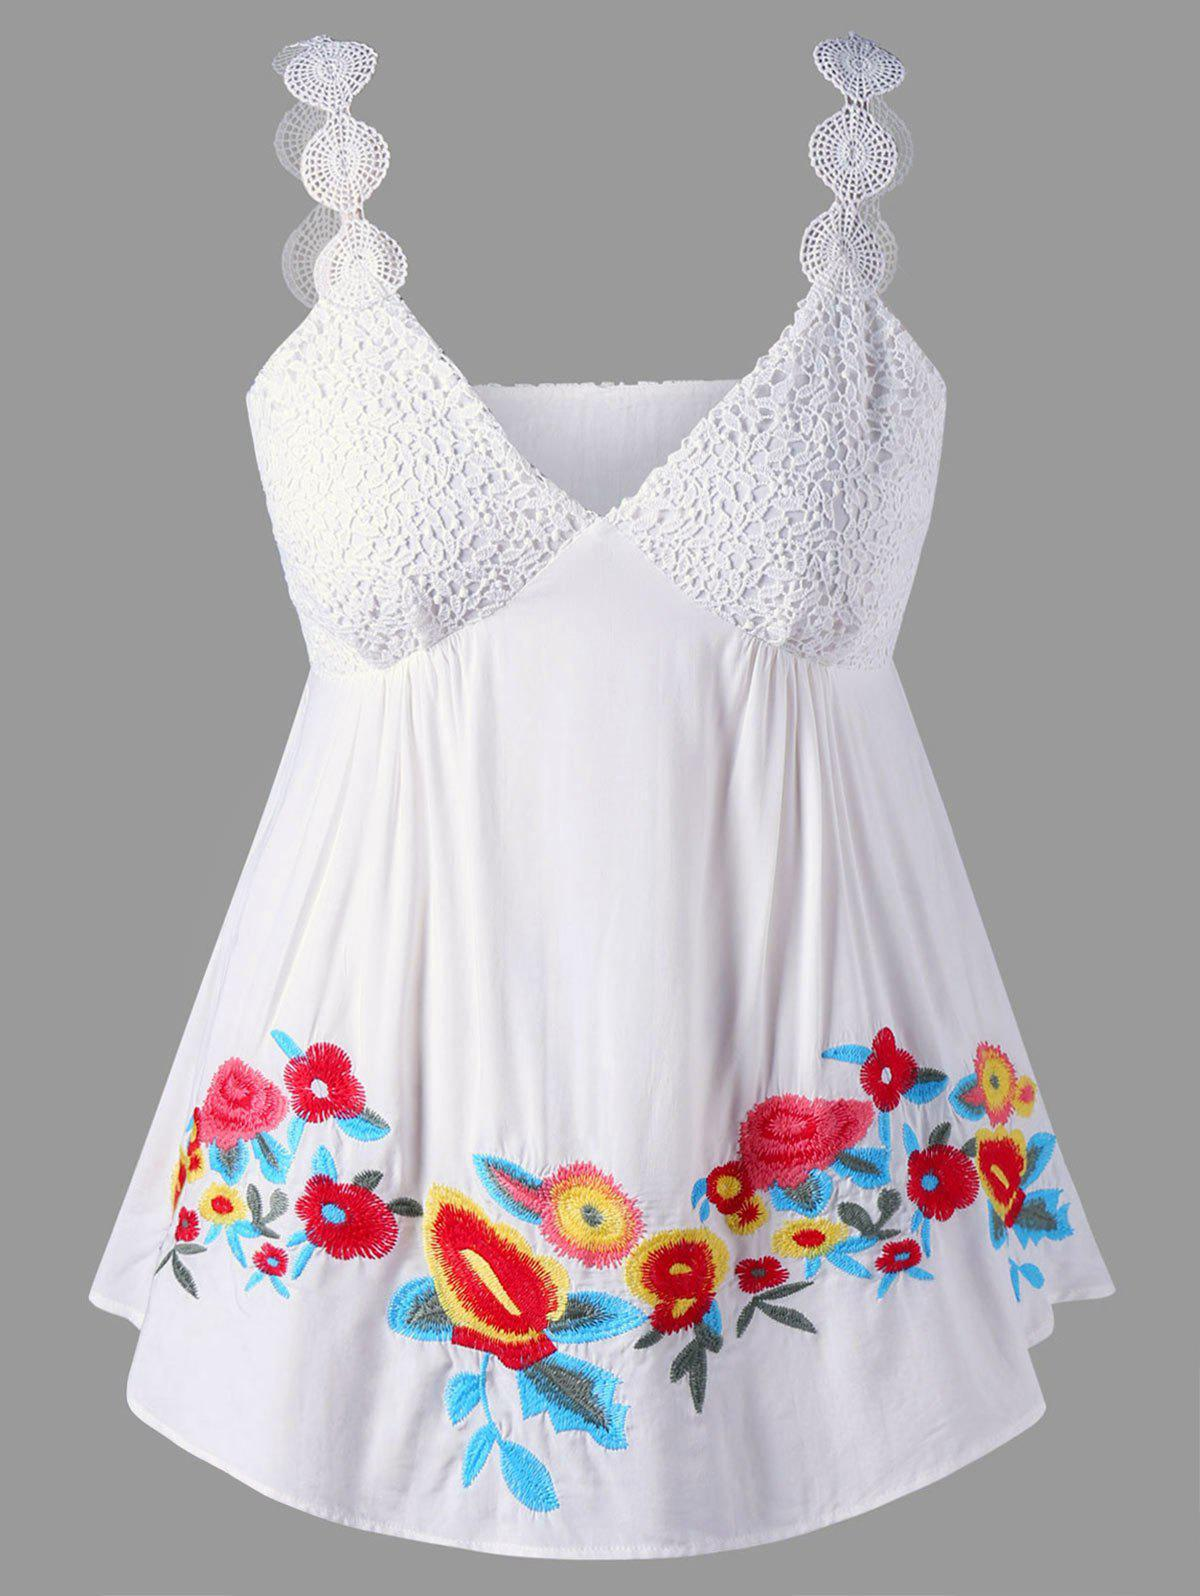 Plus Size Empire Waist Embroidery Sleeveless TopWOMEN<br><br>Size: 4XL; Color: WHITE; Material: Rayon,Spandex; Shirt Length: Regular; Sleeve Length: Sleeveless; Collar: V-Neck; Style: Casual; Season: Summer; Pattern Type: Floral; Weight: 0.2100kg; Package Contents: 1 x Top;